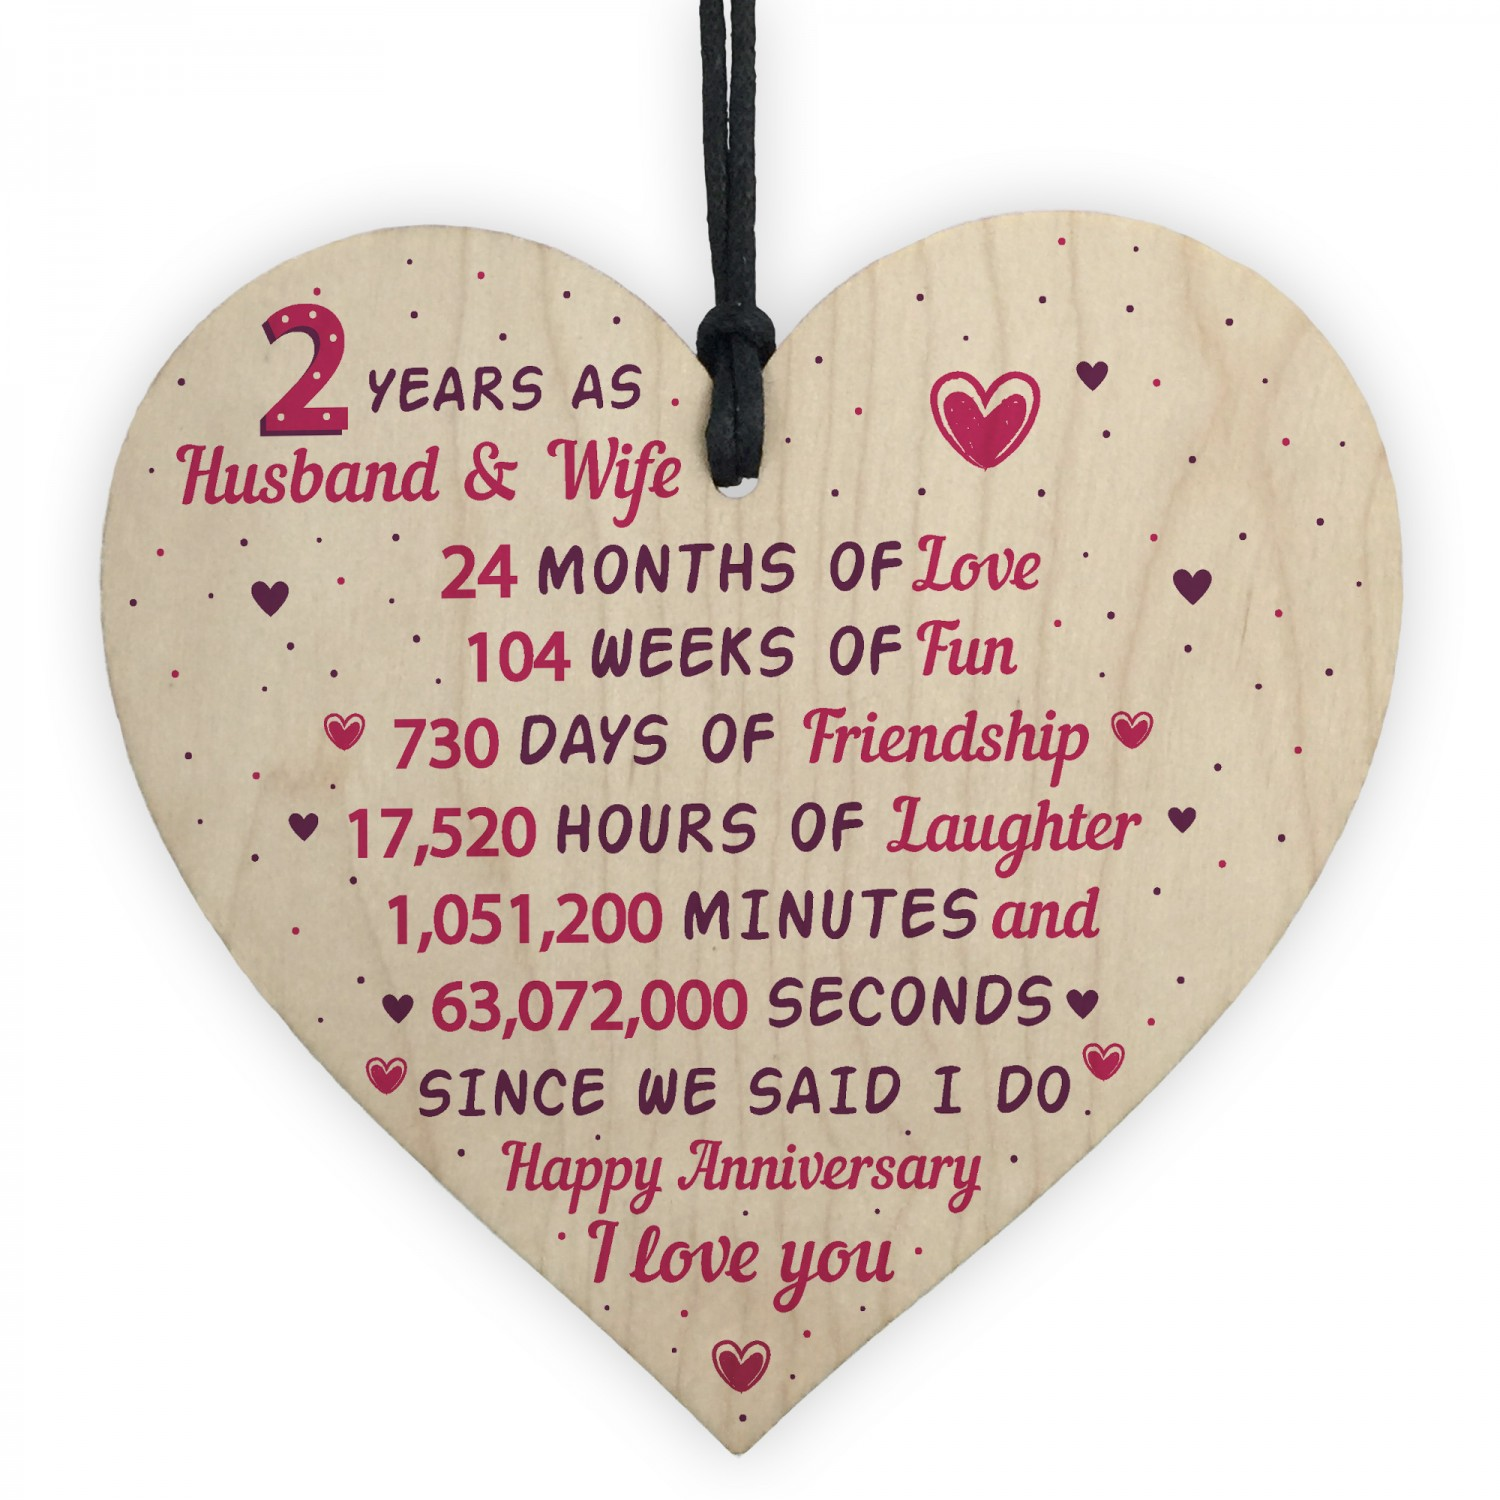 Gifts For Second Wedding Anniversary: 2nd Wedding Anniversary Gift Wooden Heart Cotton Wedding Gift